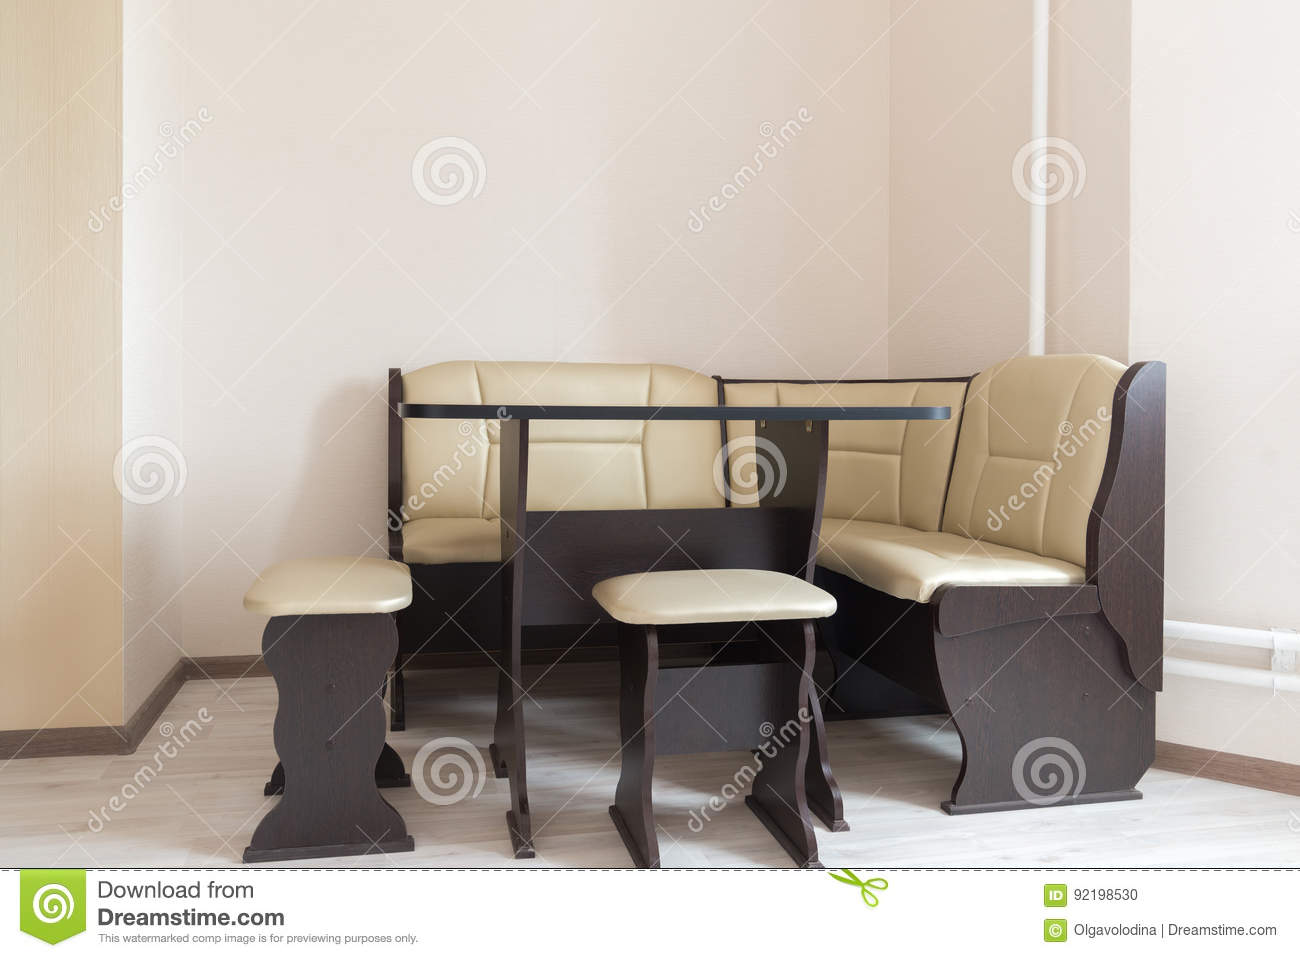 Kitchen Corner Sofa And Table In Interior Stock Photo - Image of